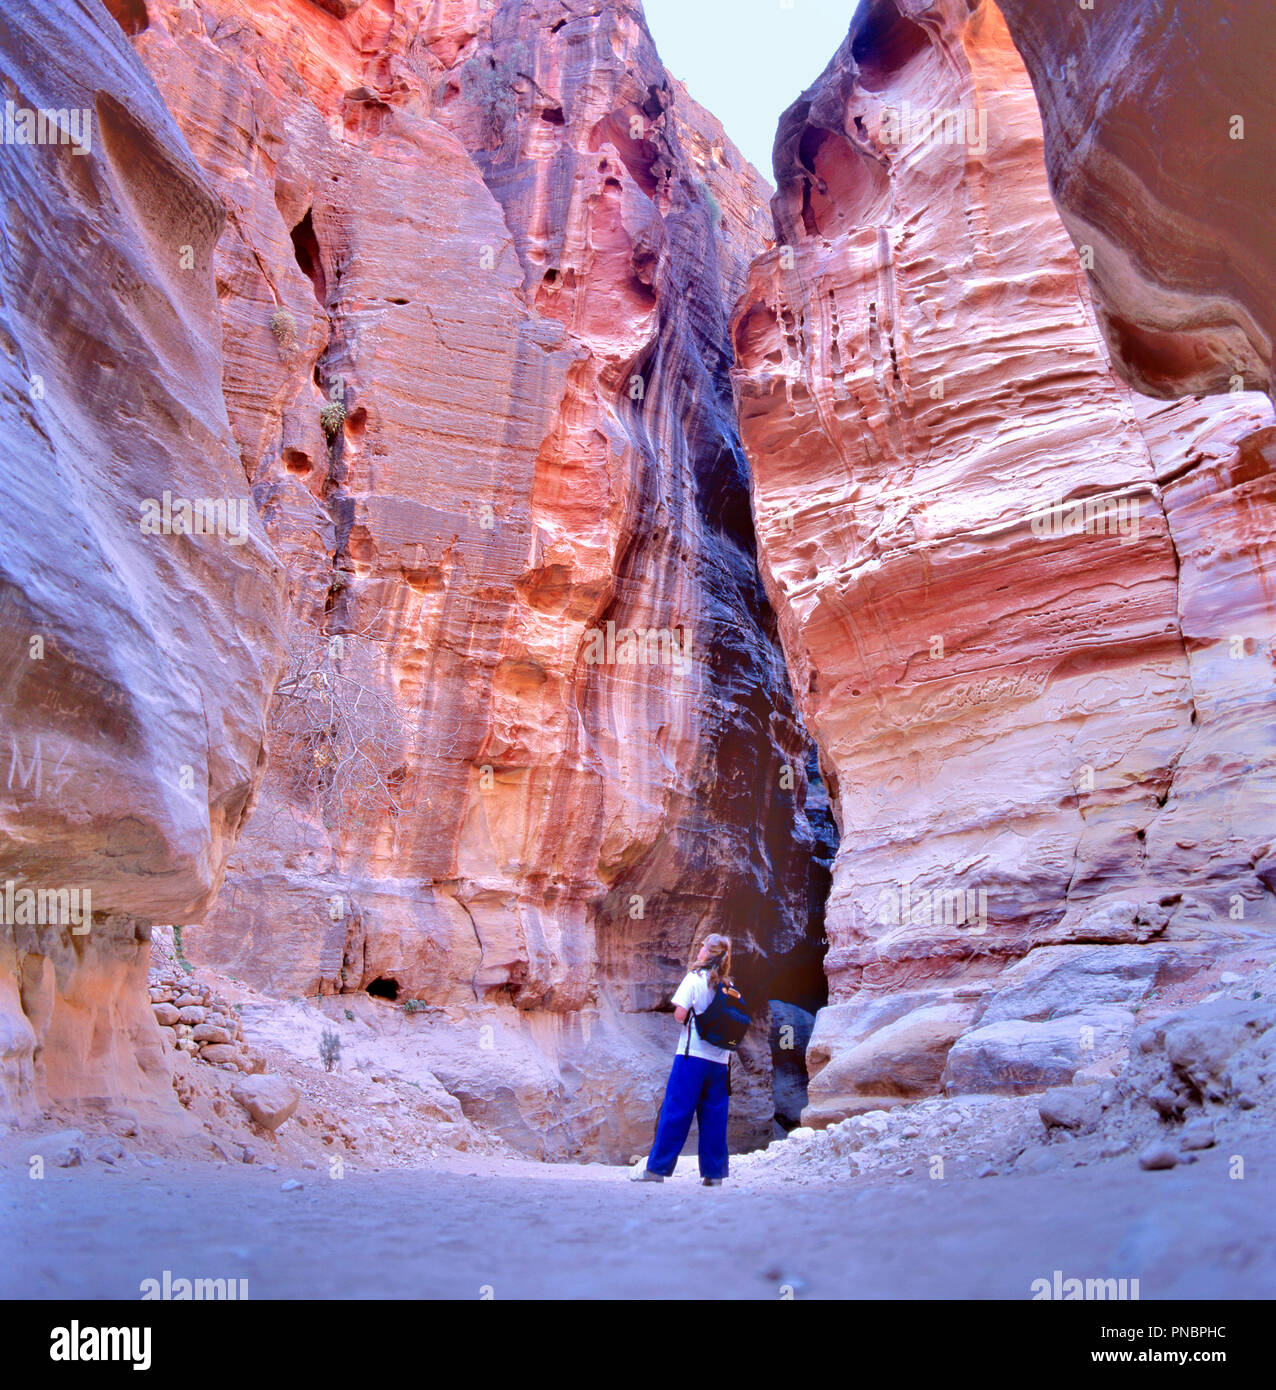 PETRA,JORDAN-SEPTEMBER 12,2015: The Siq, the narrow slot-canyon that serves as the entrance passage to the hidden city of Petra, Jordan - Stock Image